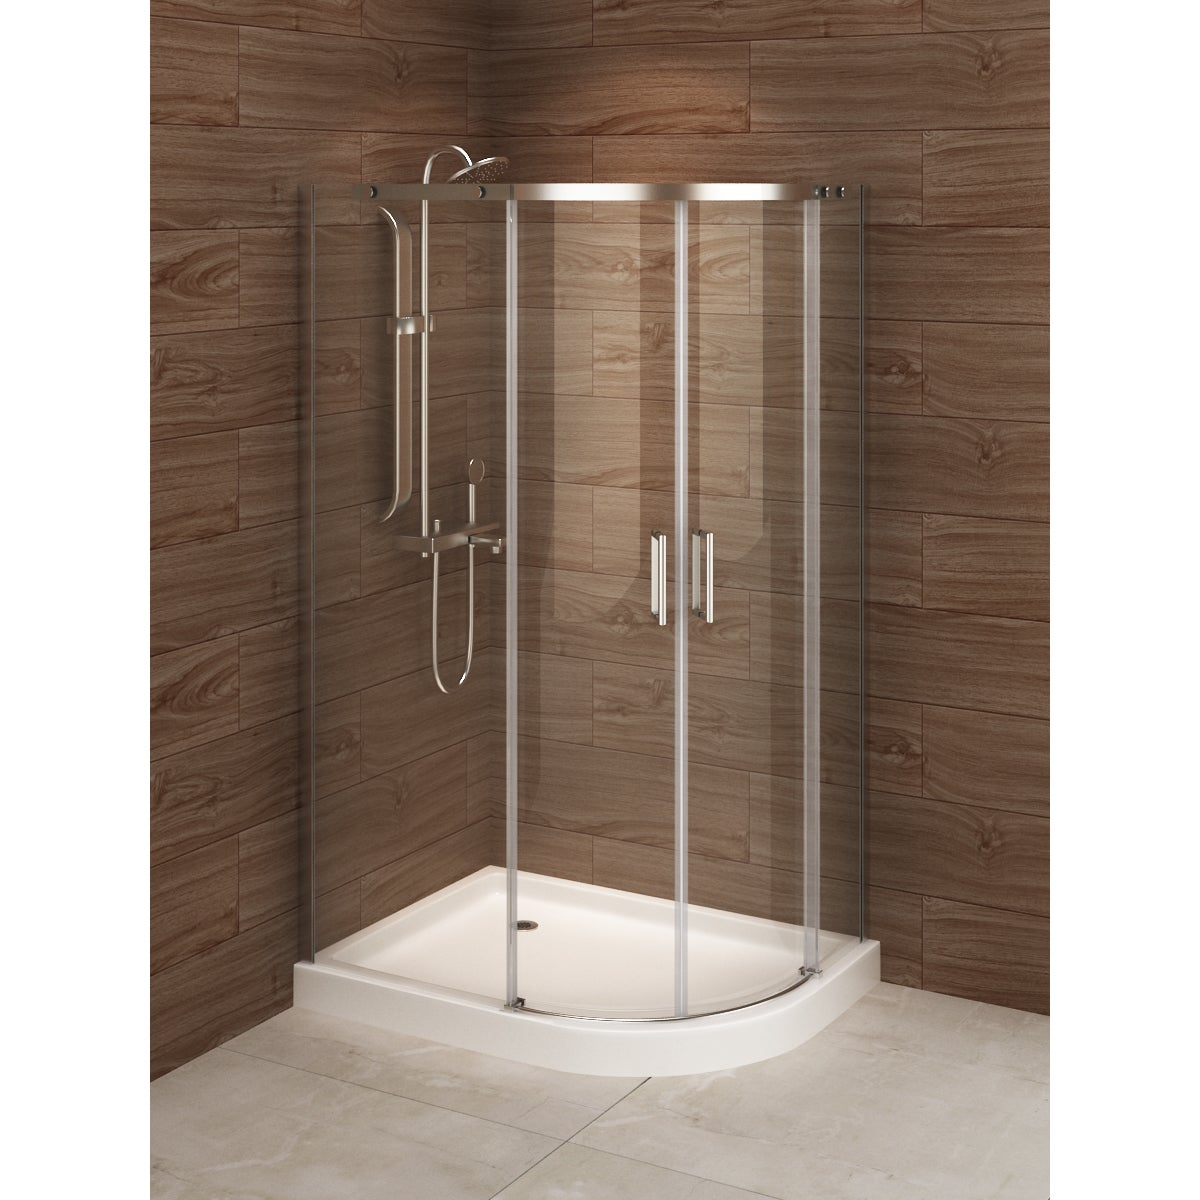 48 x 48 shower stall | Plumbing Fixtures | Compare Prices at Nextag